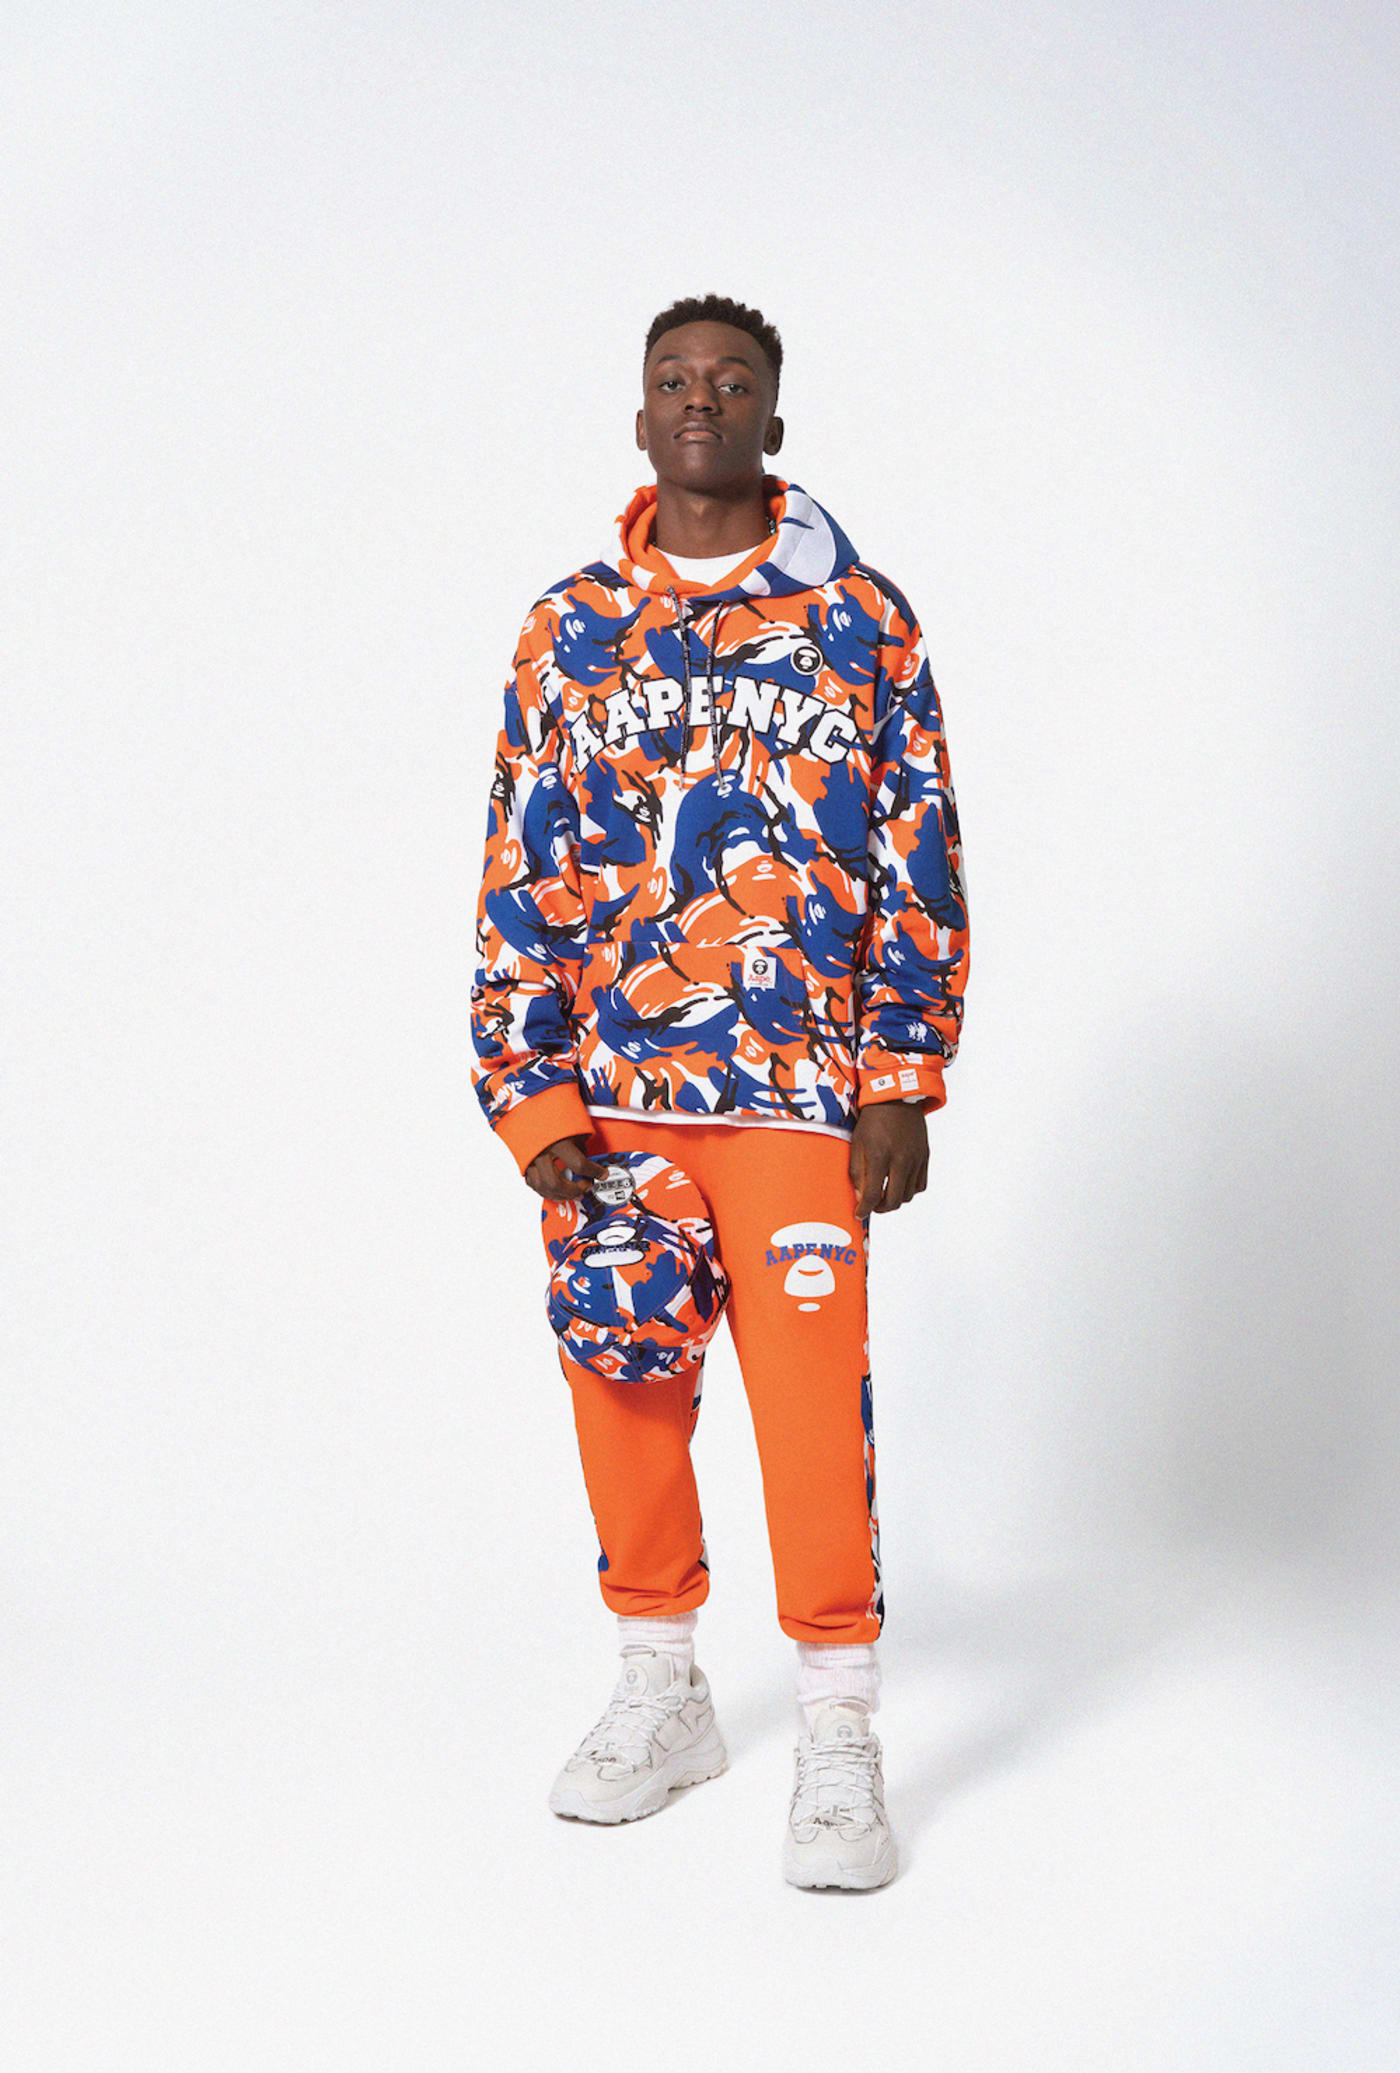 AAPE Bathing Ape NYC Collection